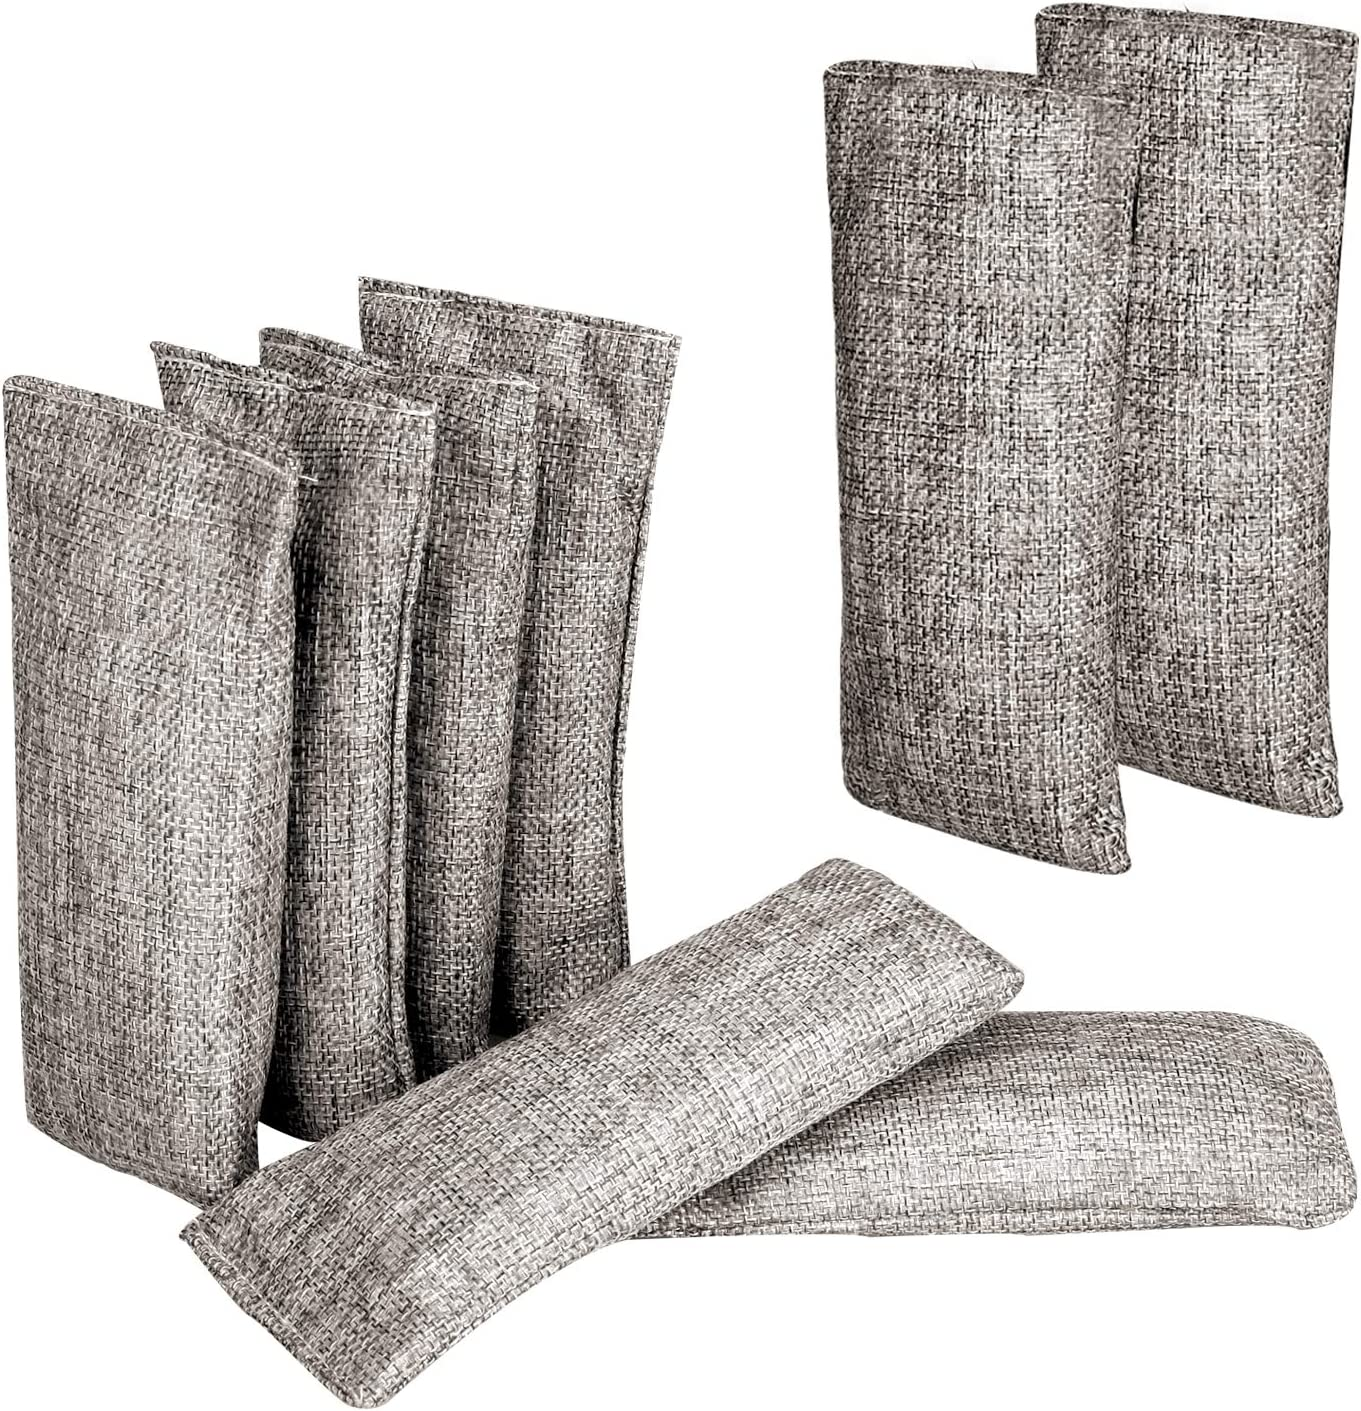 ANYI16 Natural Air Purifying Bags,150g Each Pair Mini Bamboo Charcoal Bags,Shoe Deodorizer and Odor Eliminator (8PACK x 75g)